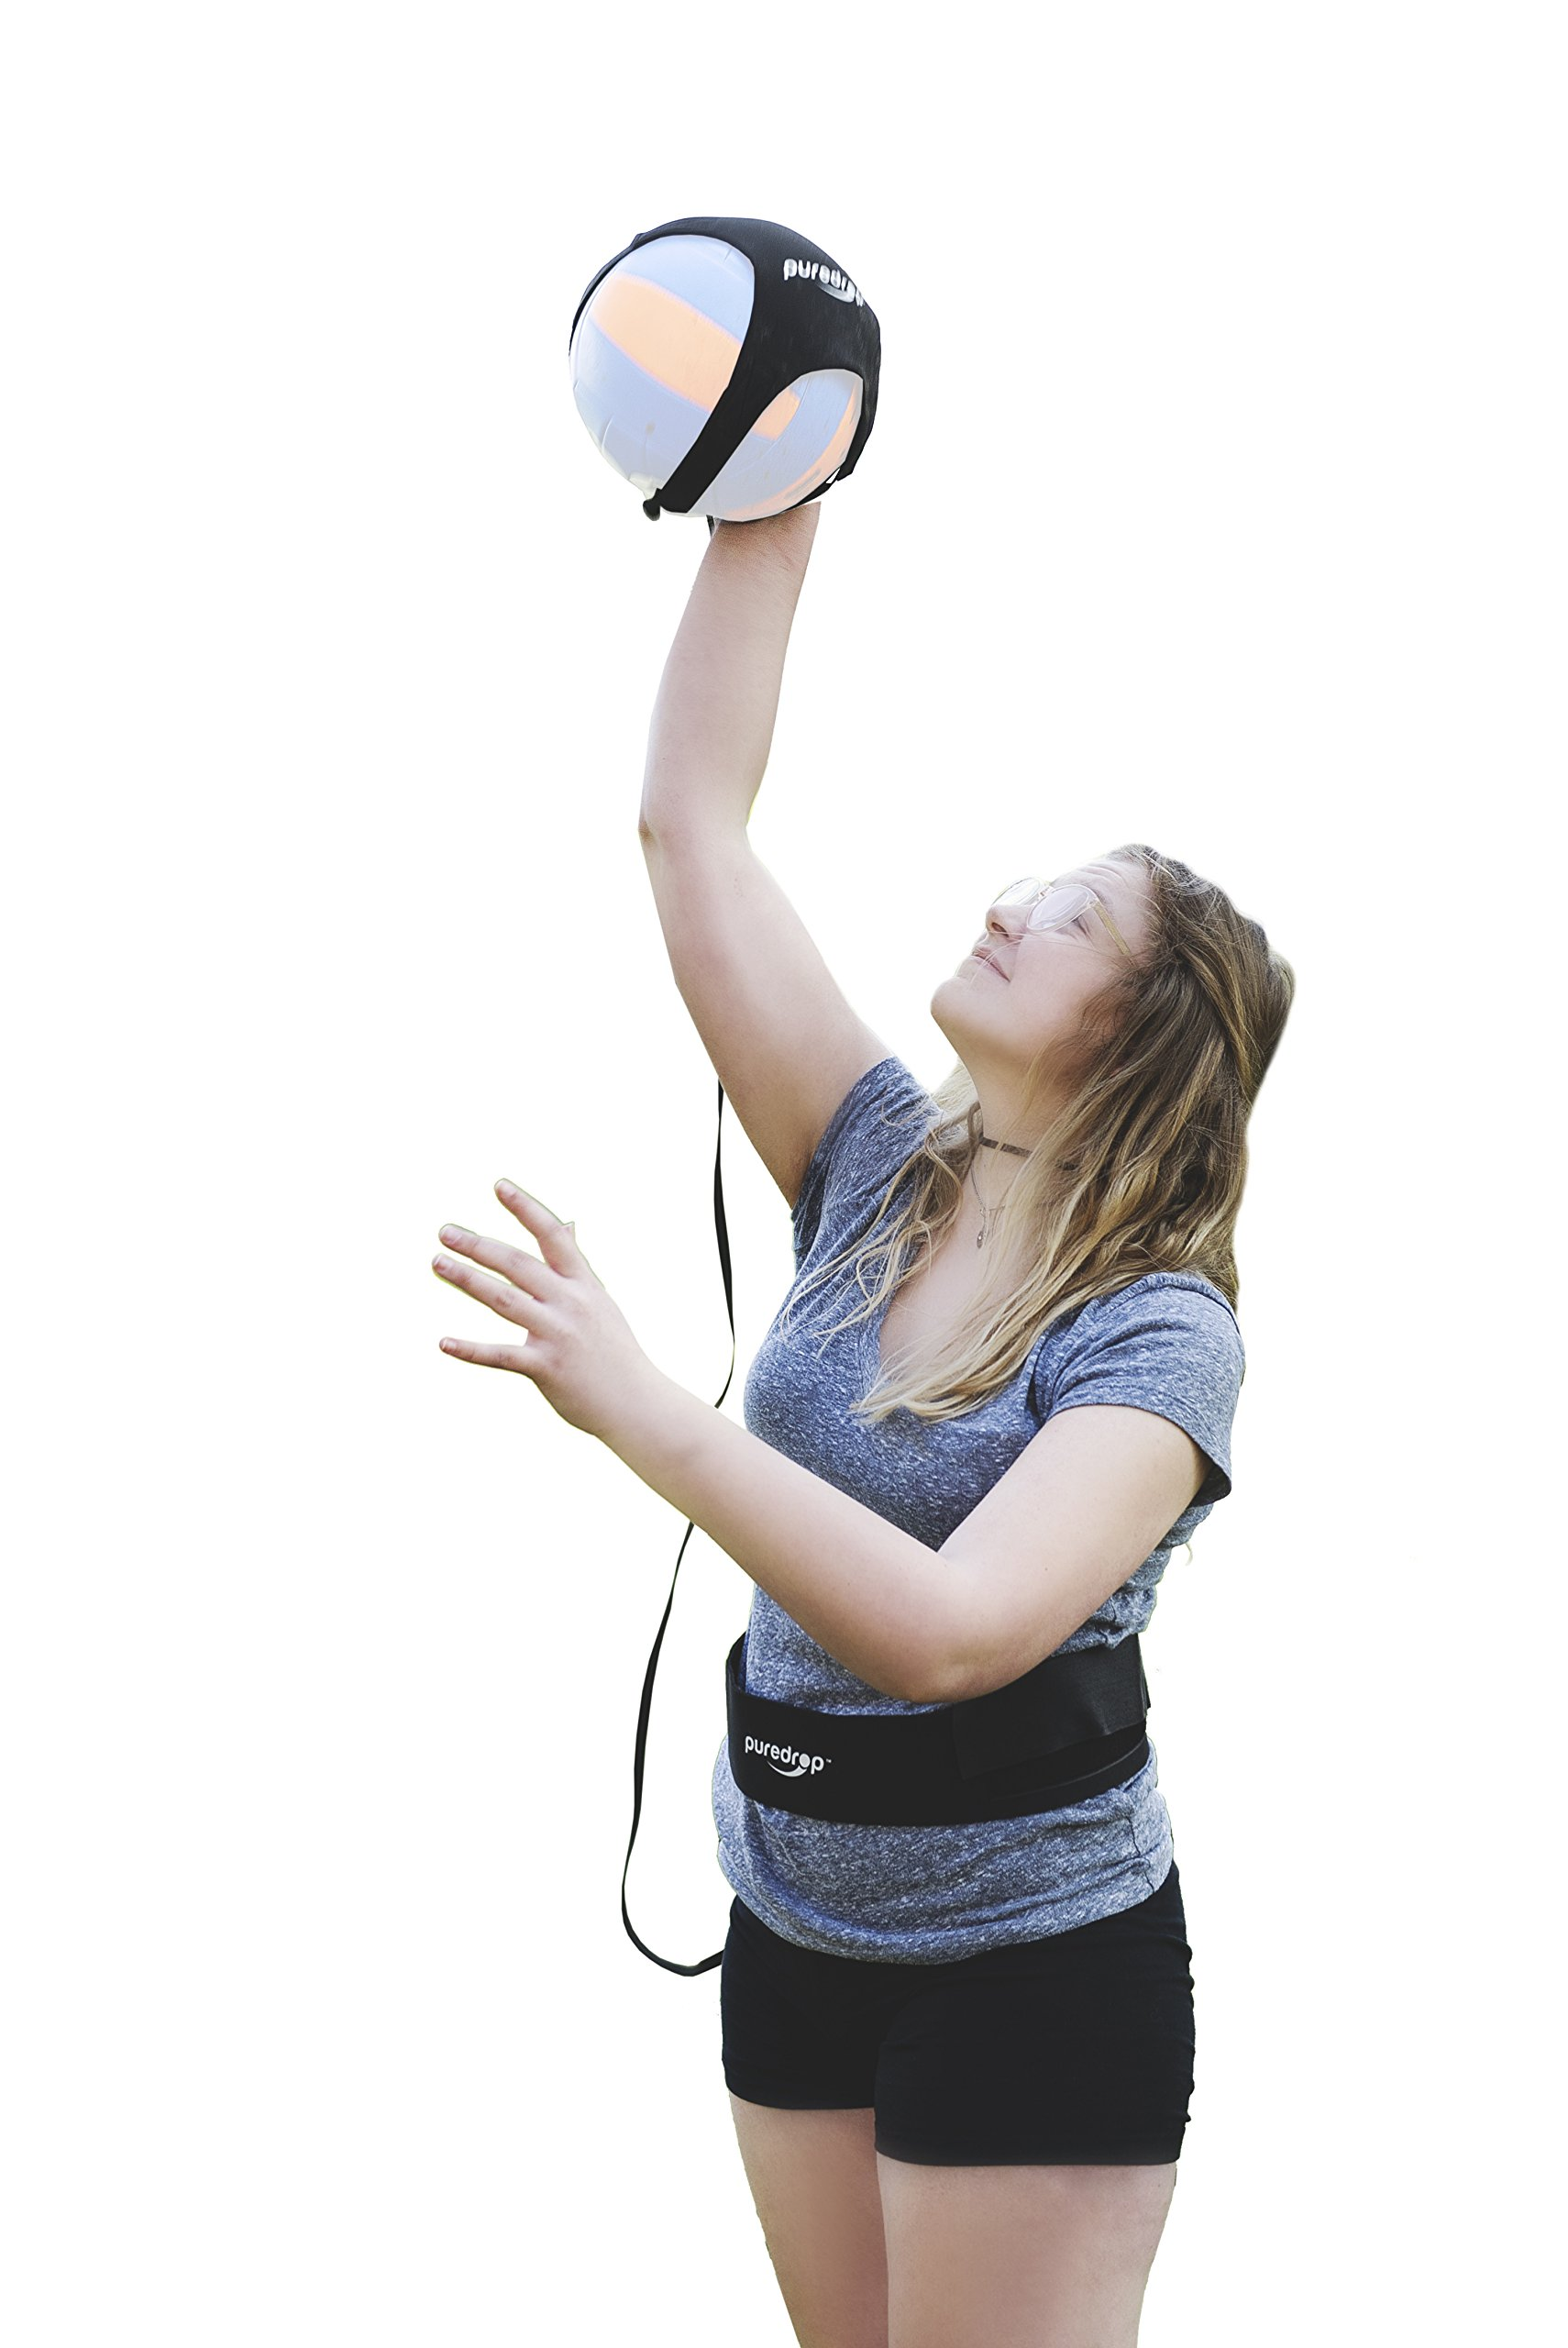 Puredrop Volleyball Training Equipment Aid : great trainer for solo practice of serving tosses and arm swings. Returns the ball after every swing. Adjustable cord and waist length, fits any volleyball